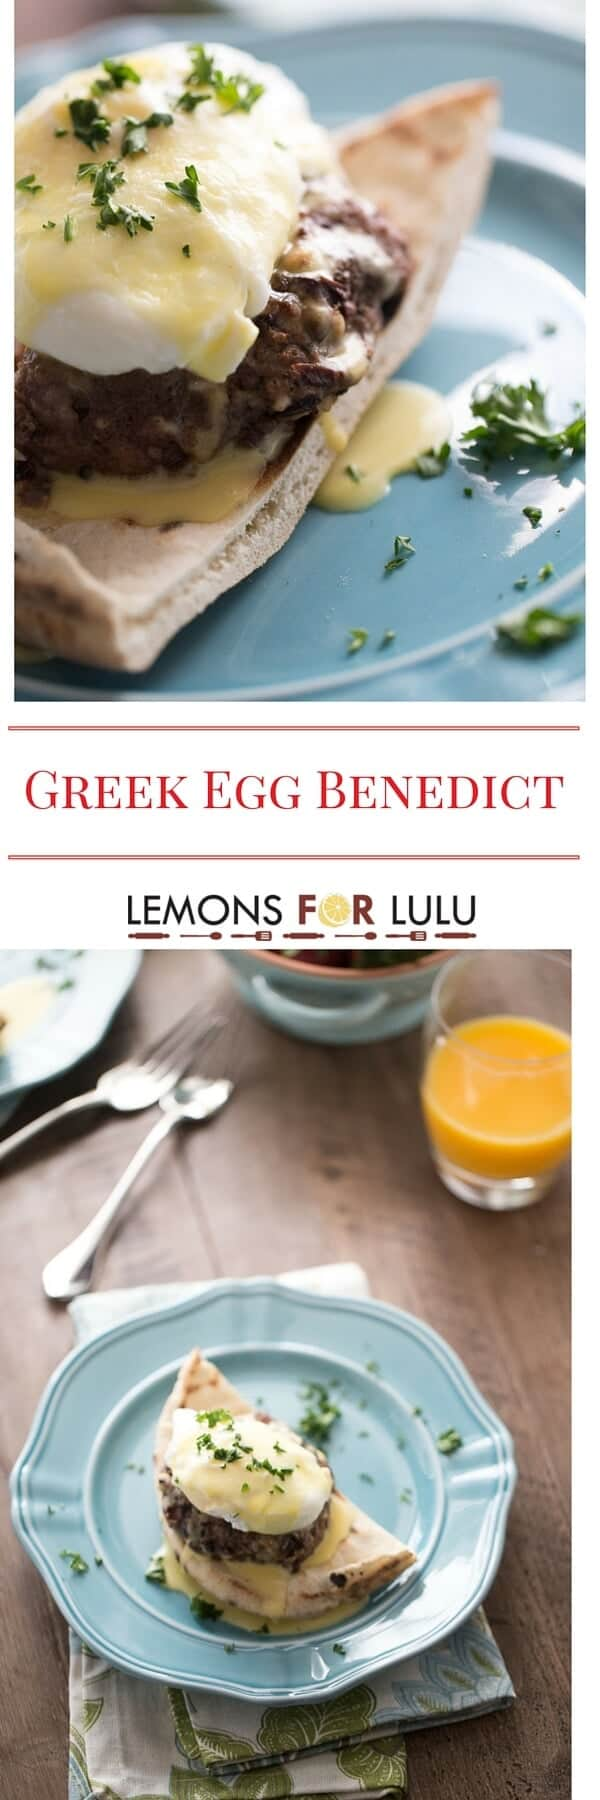 Breakfast is served! Thick lamb patties, pita bread, poached eggs and a simple blender hollandaise sauce makes this Greek Egg Benedict and unforgettable way to start the day